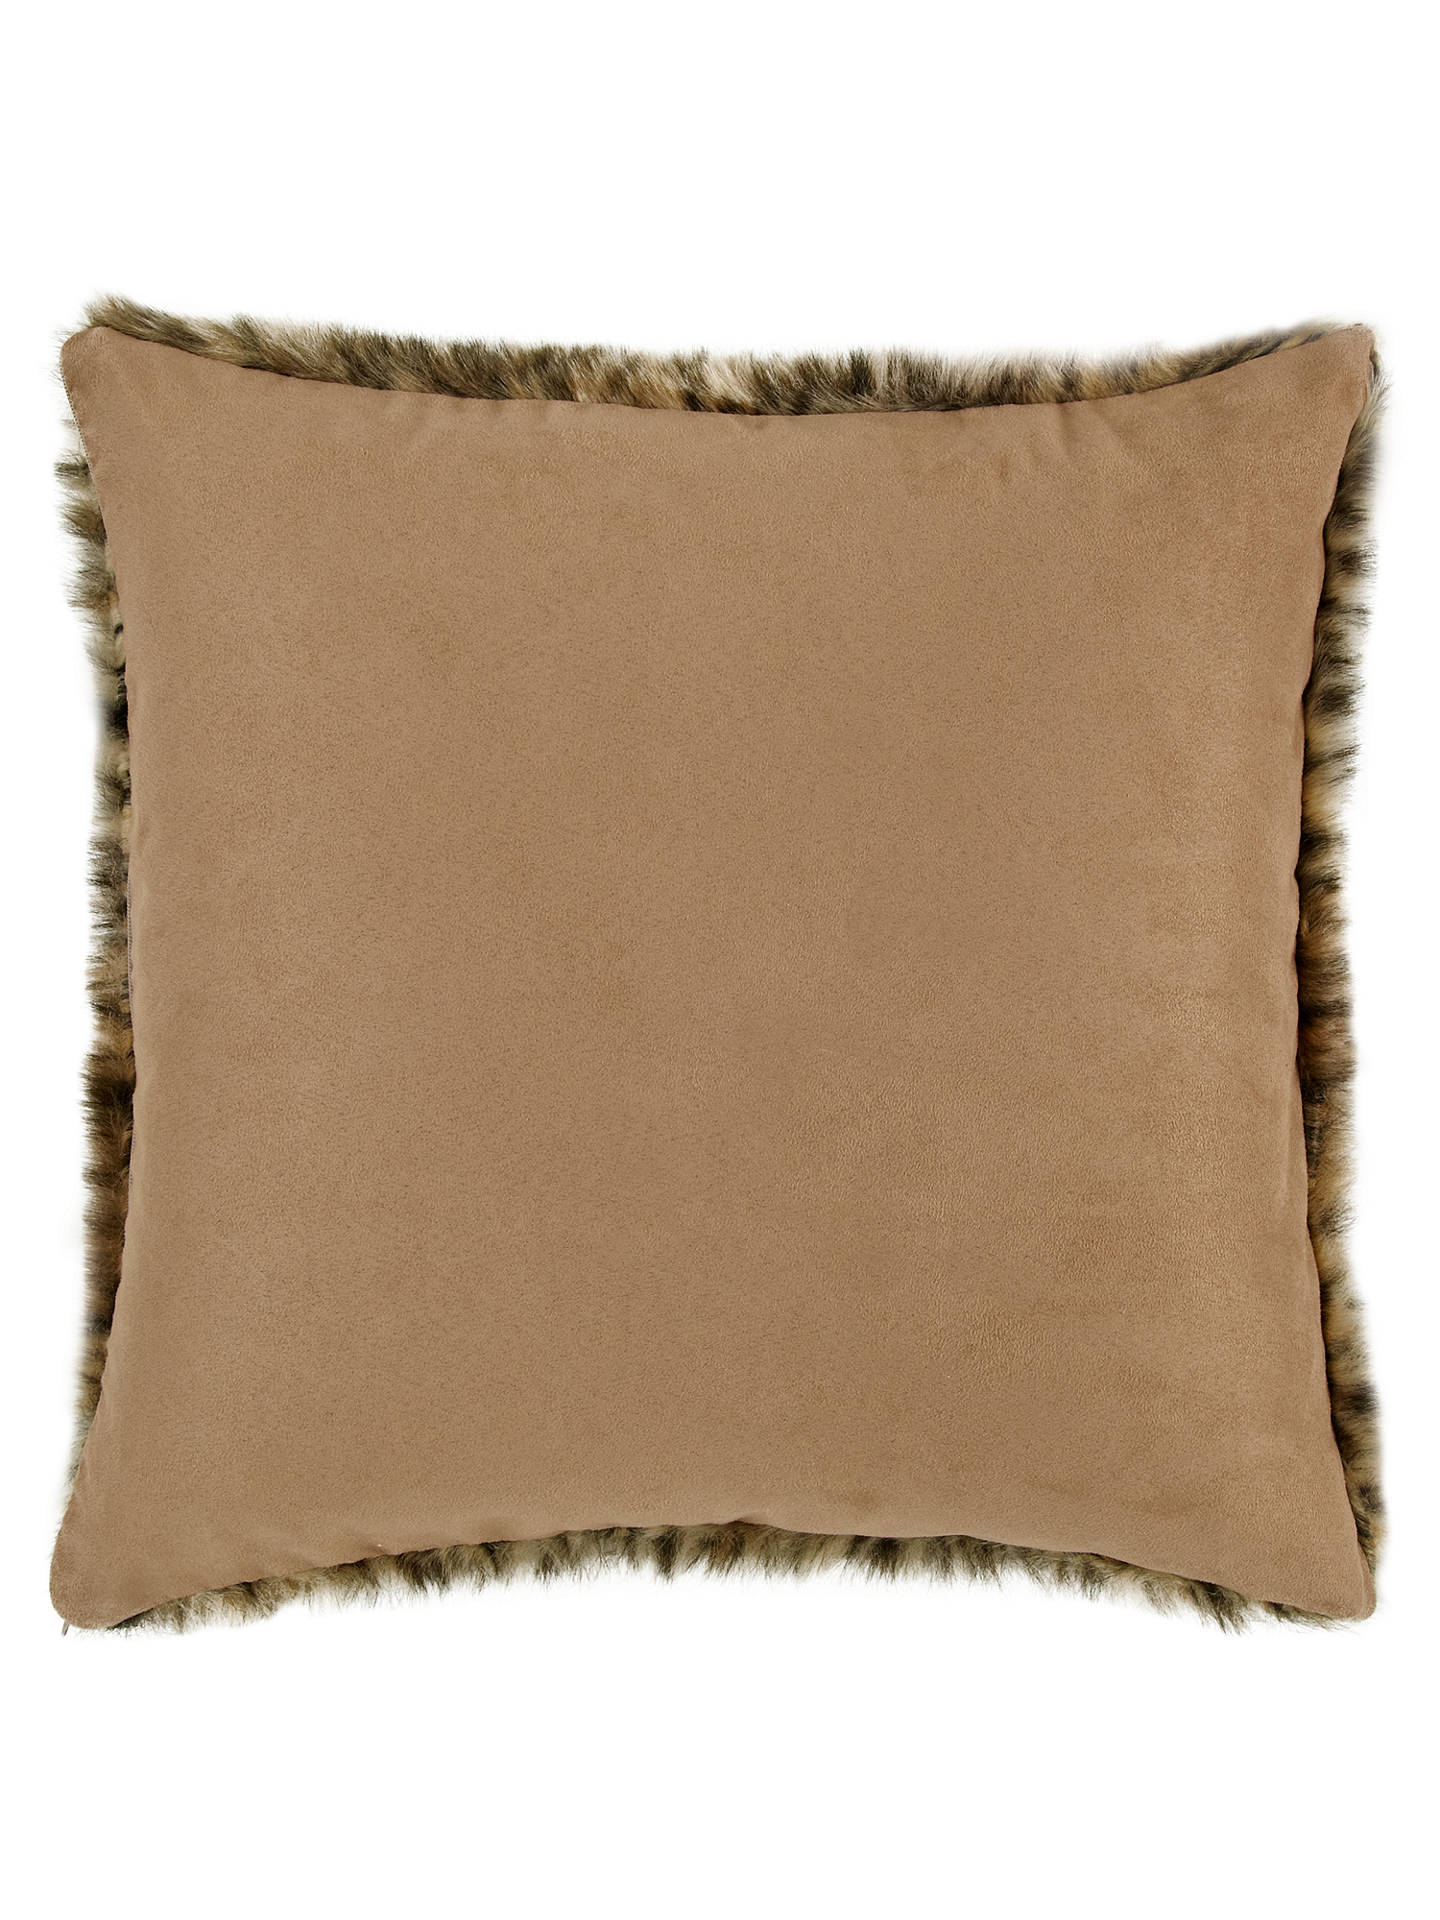 Buy John Lewis Faux Fur Cushion, Multicoloured Online at johnlewis.com